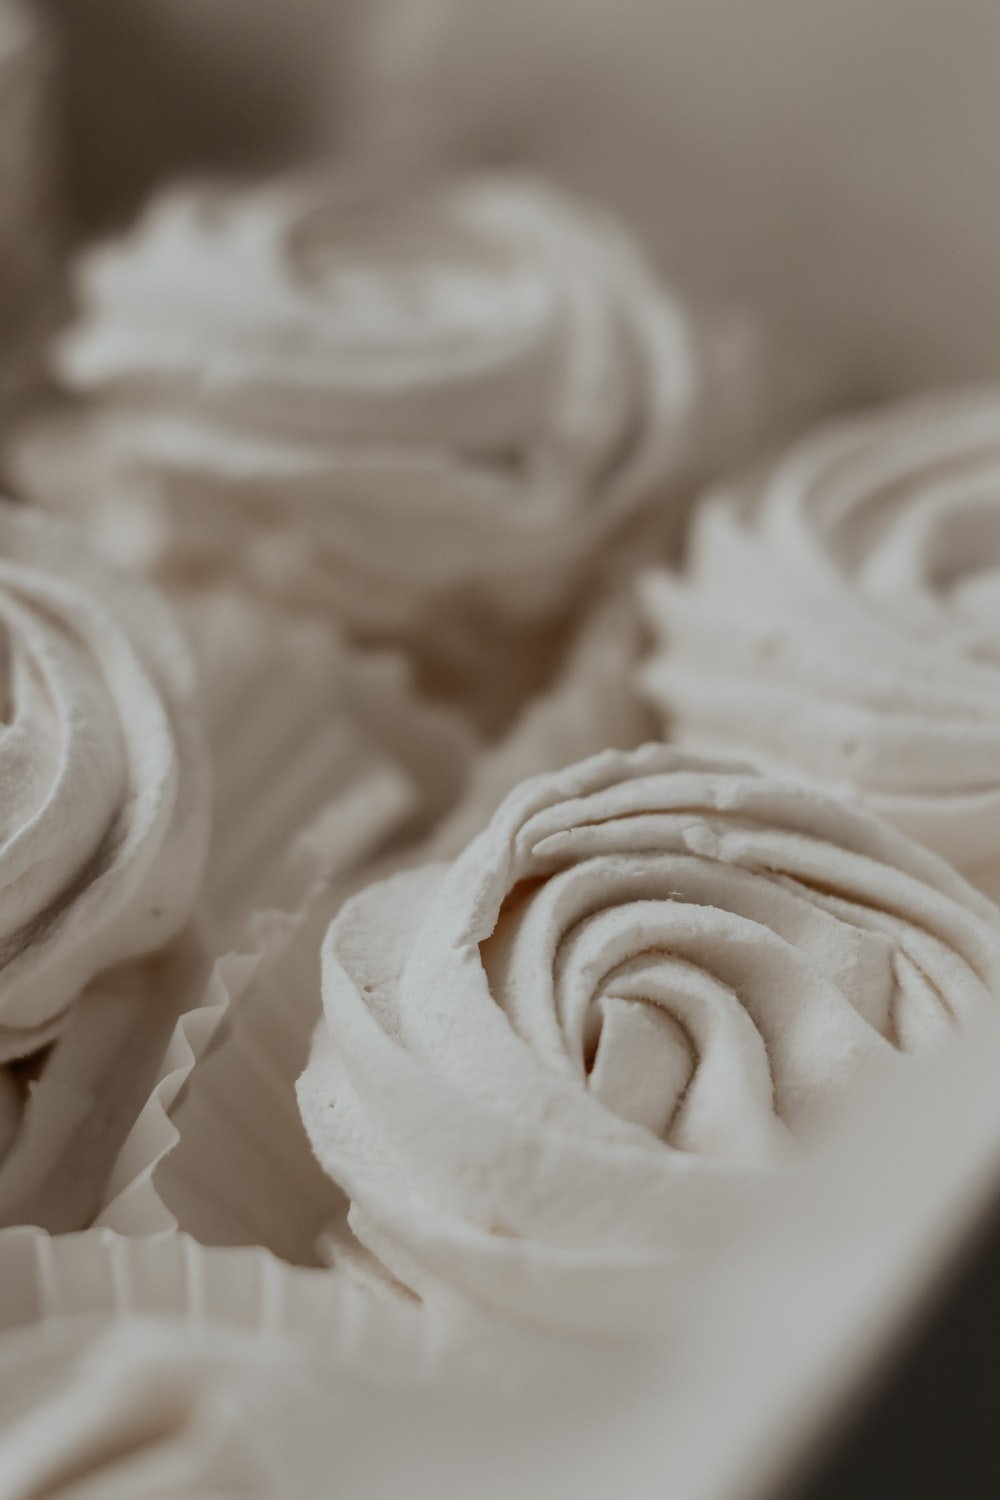 white rose flower in close up photography